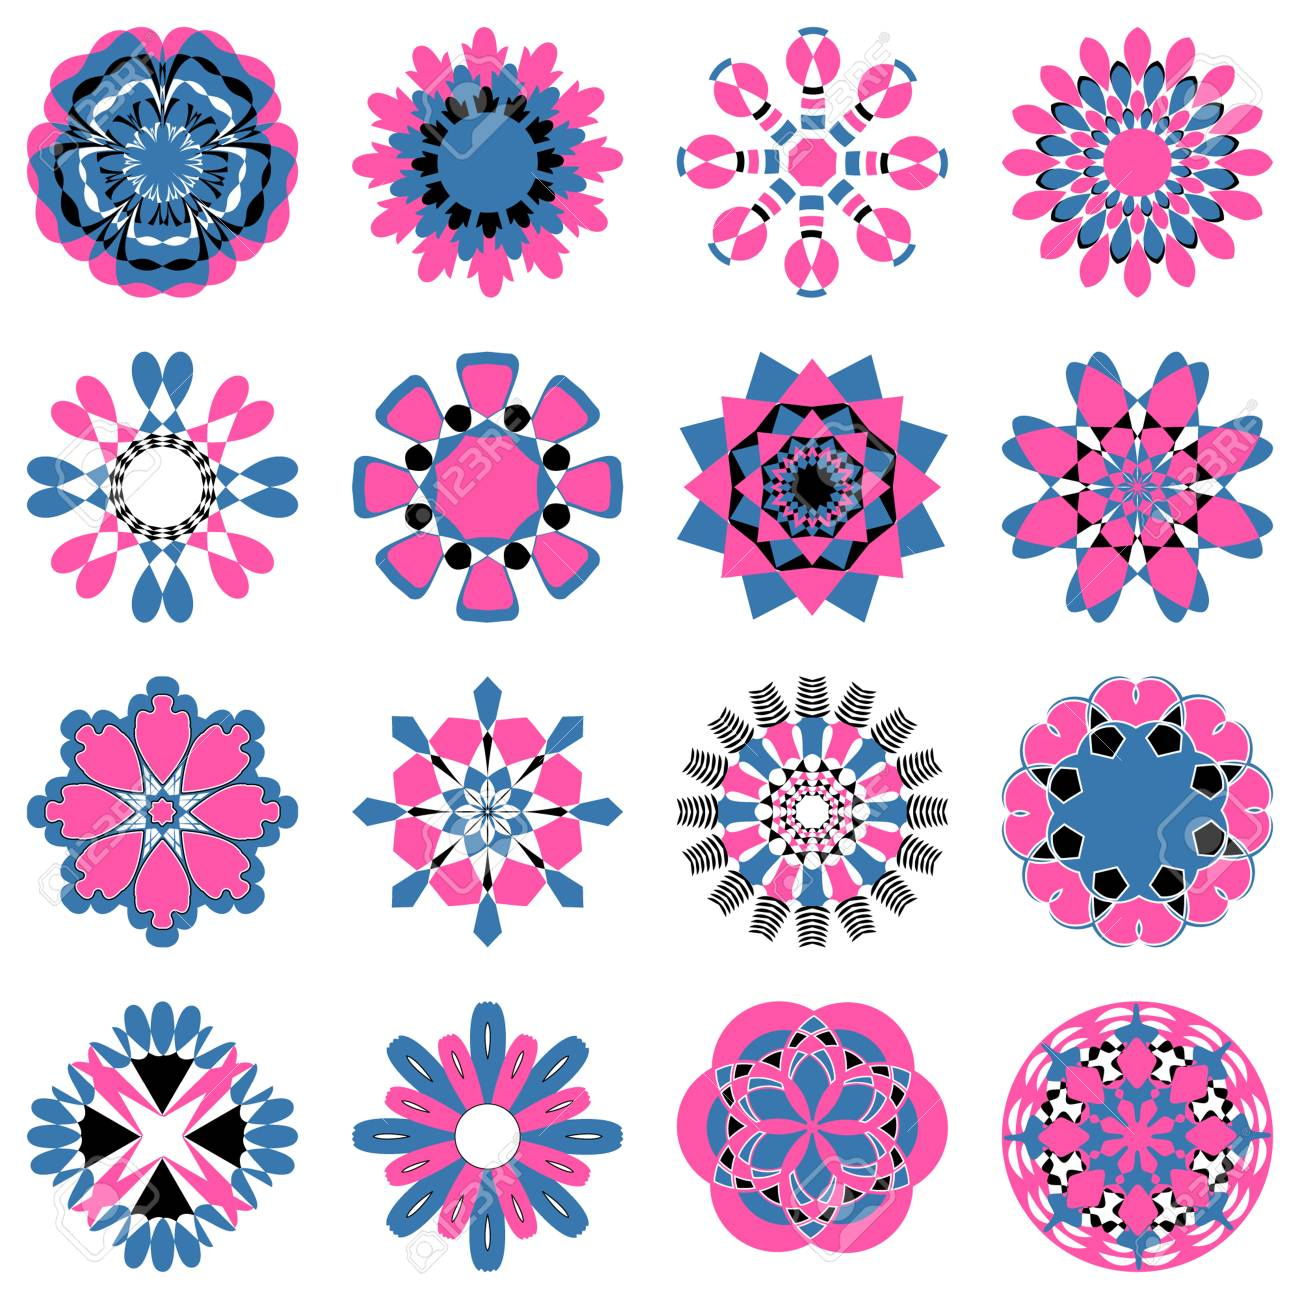 vector set of abstract circular patterns decorative flowers royalty